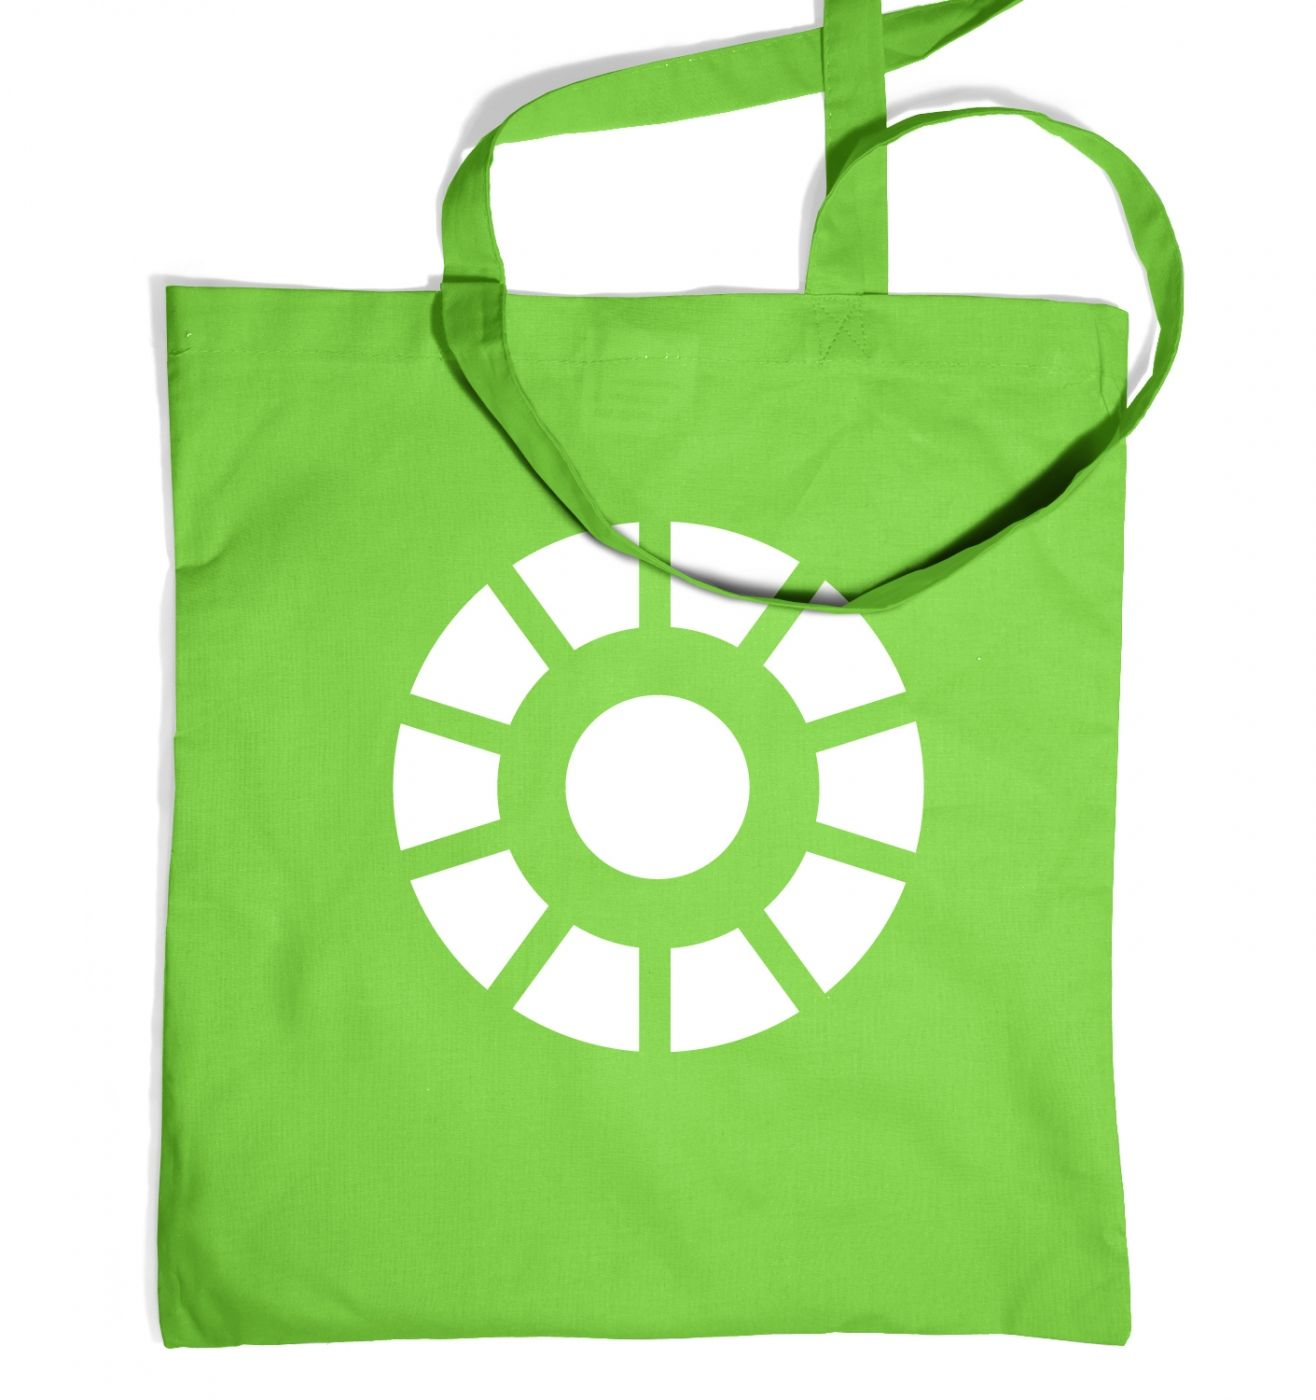 Arc Reactor tote bag